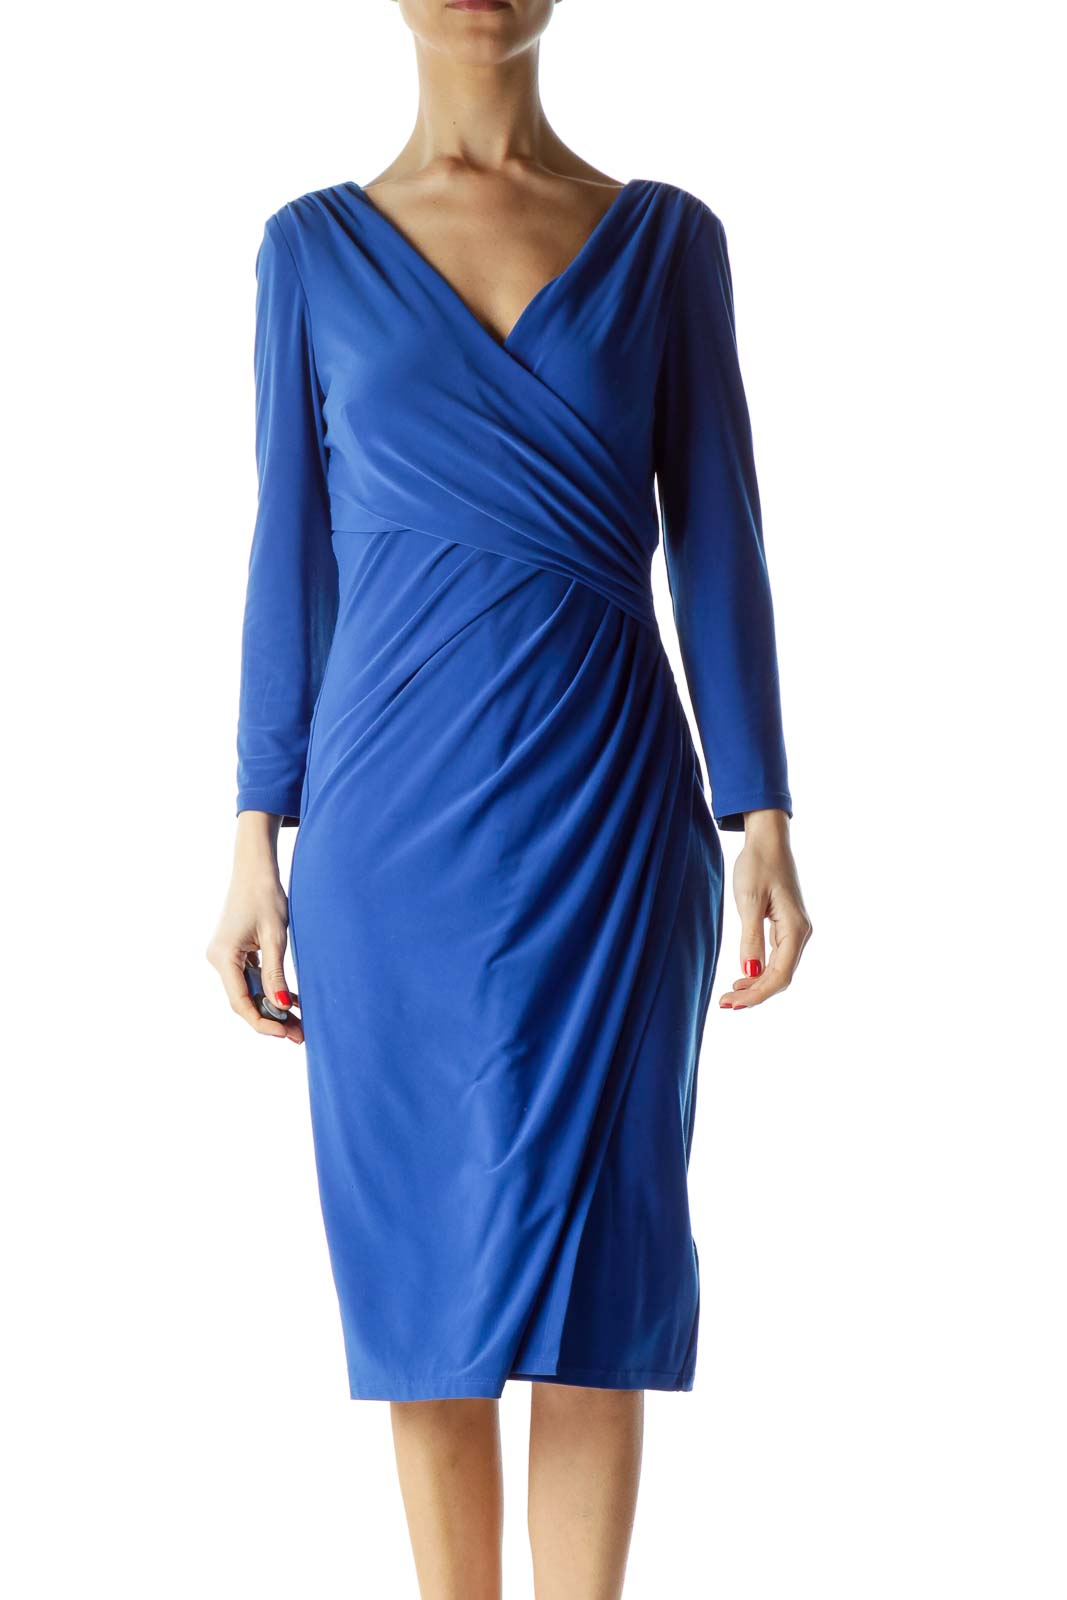 Blue Ruched 3/4 Sleeve Dress Front